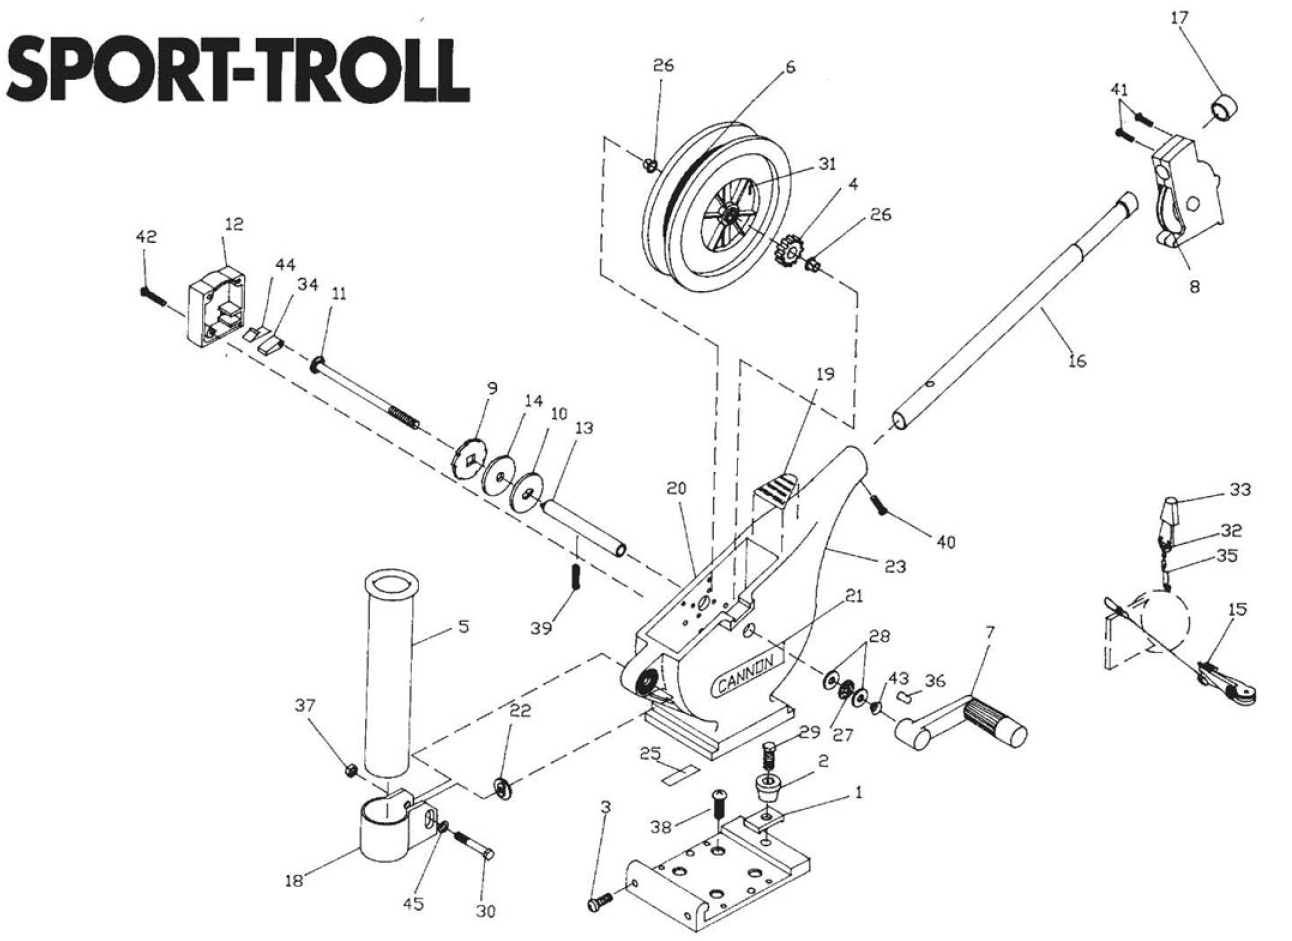 Order Cannon Sport-Troll Parts Online at FISH307.com